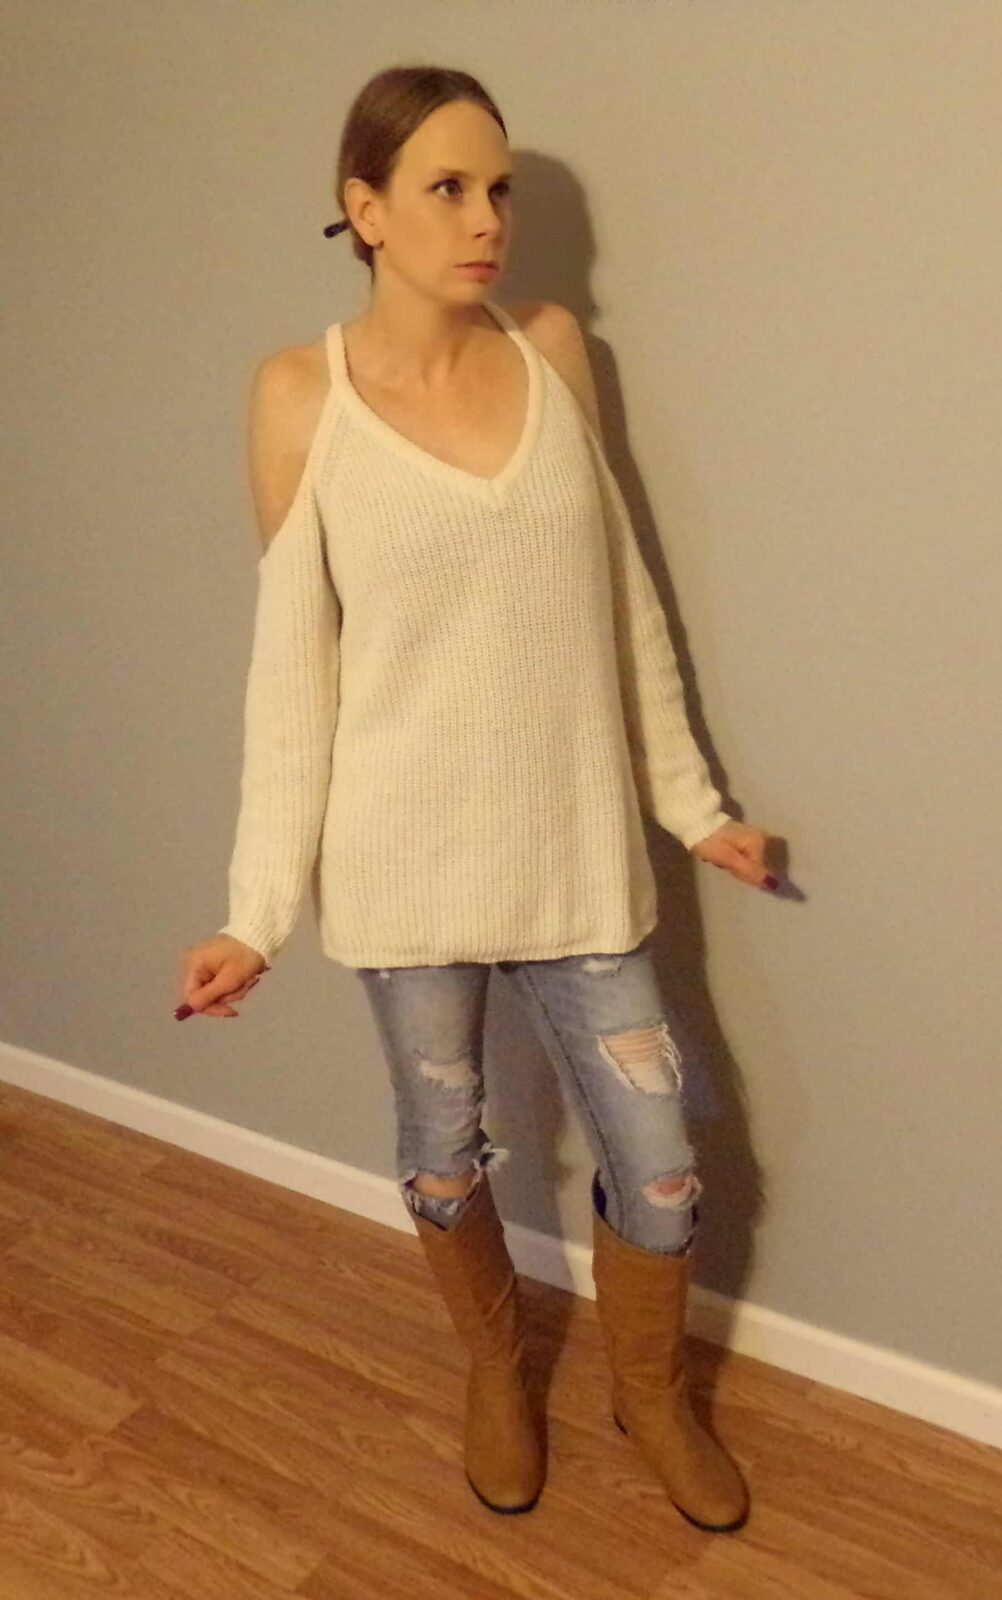 Outfit of the Day: Cold Shoulder Sweater from Kiyomi's Kloset